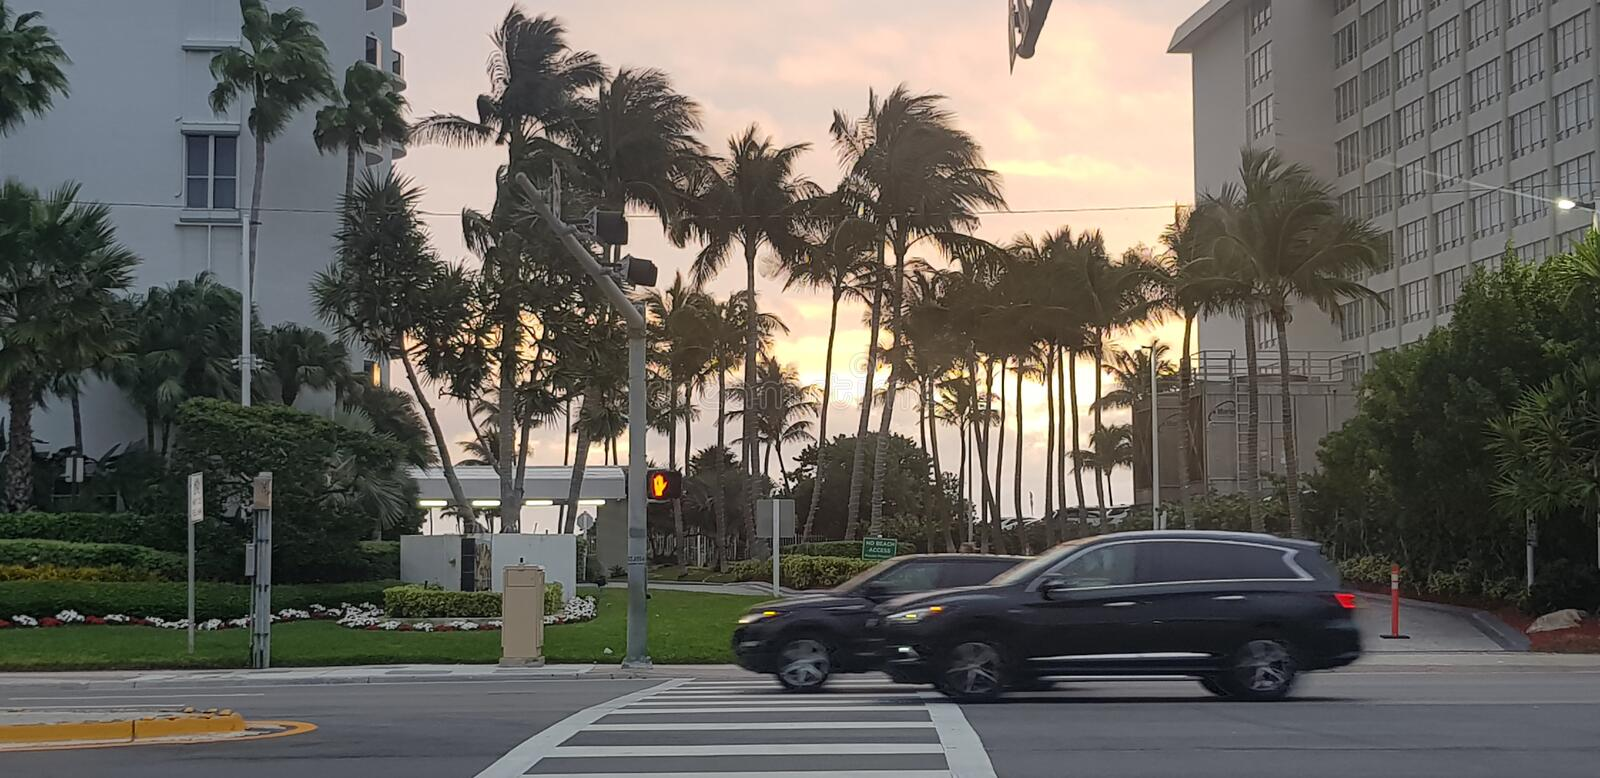 Sunset in Miami With Road, Cars and Stoplight. Card, crossibg, crossing, yellow, sky, apparment, appartement, palm, , tree, trees, florida, maimai, maimi royalty free stock photo